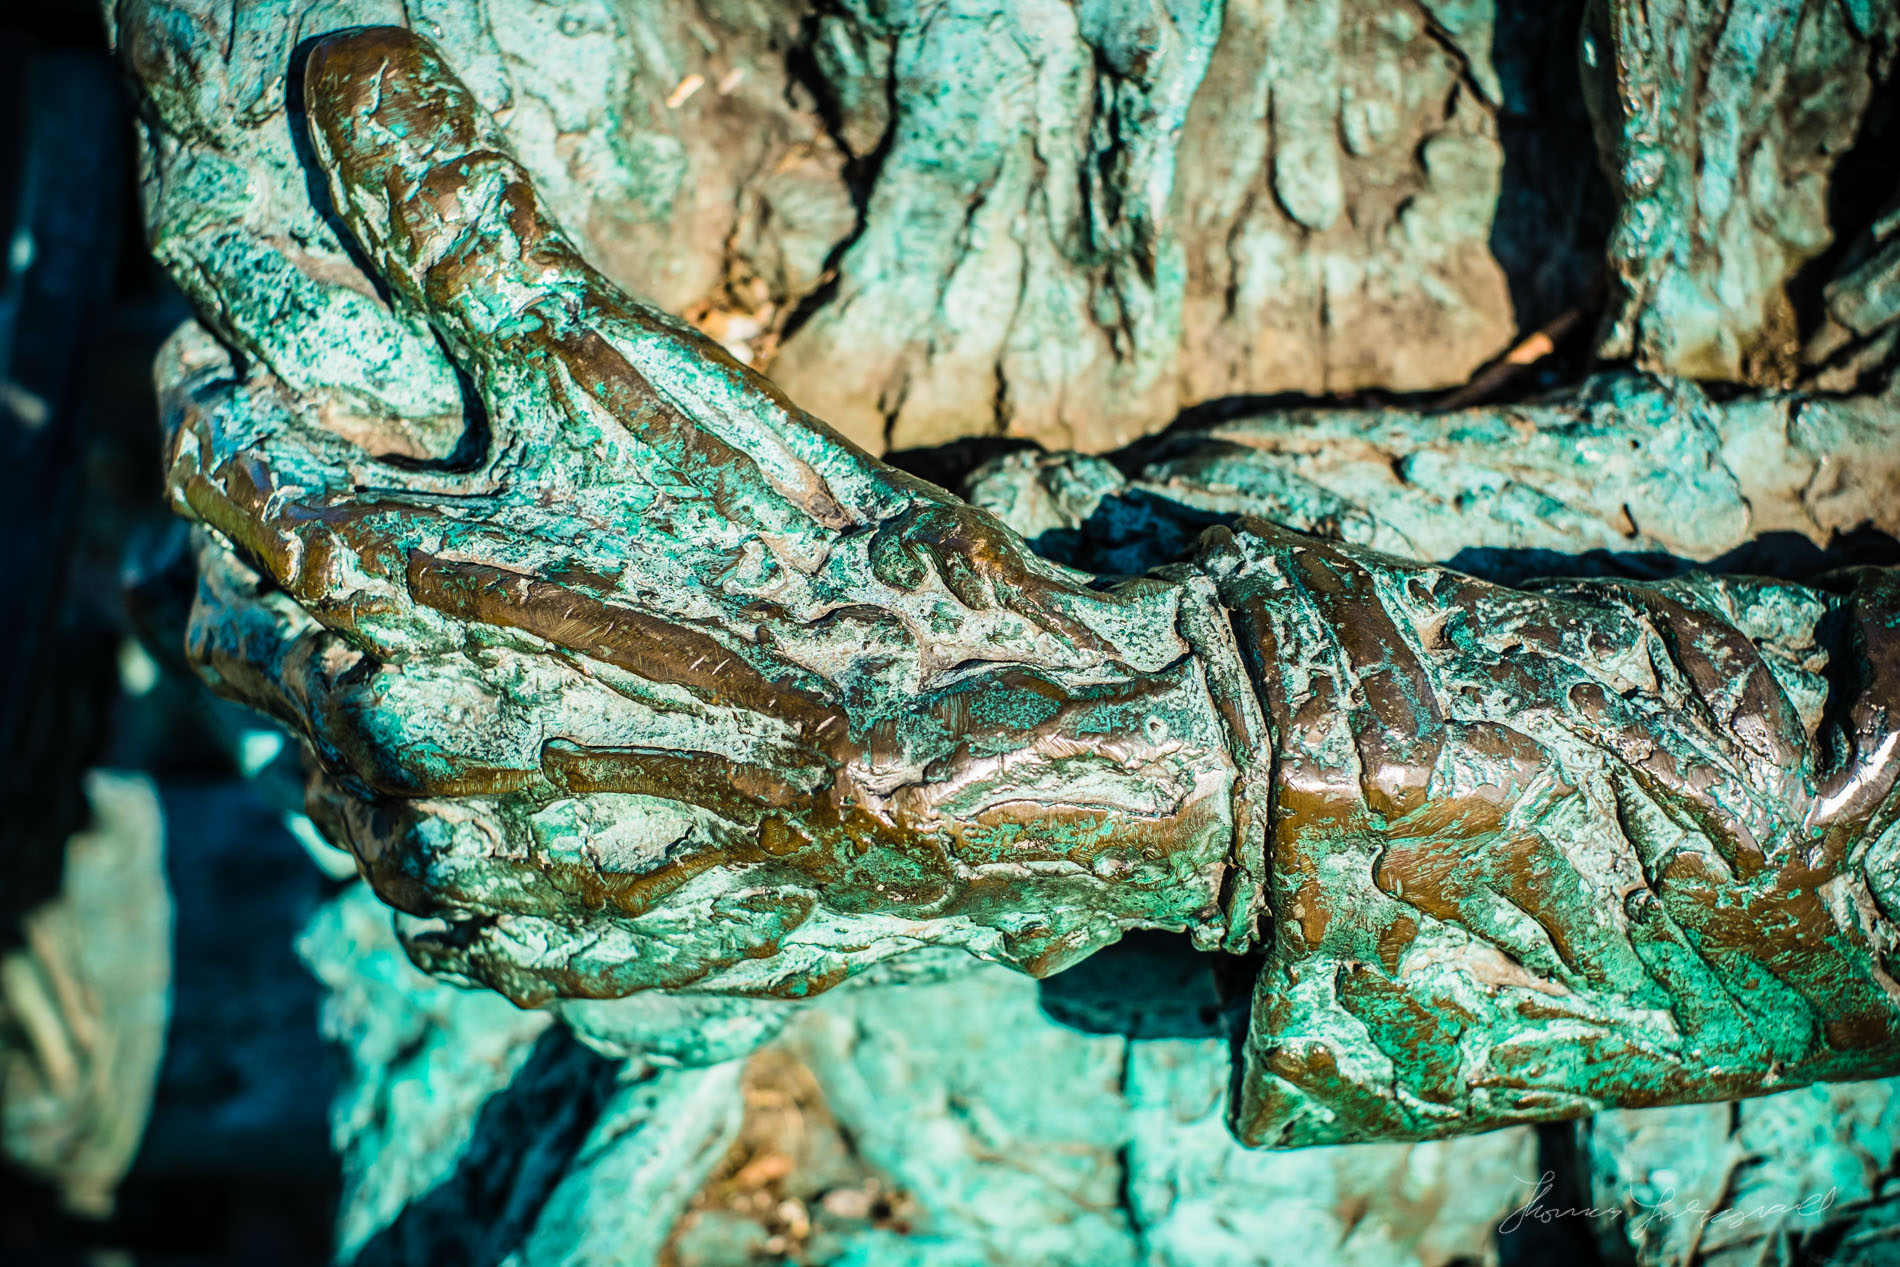 The hands of Patrick Kavanagh